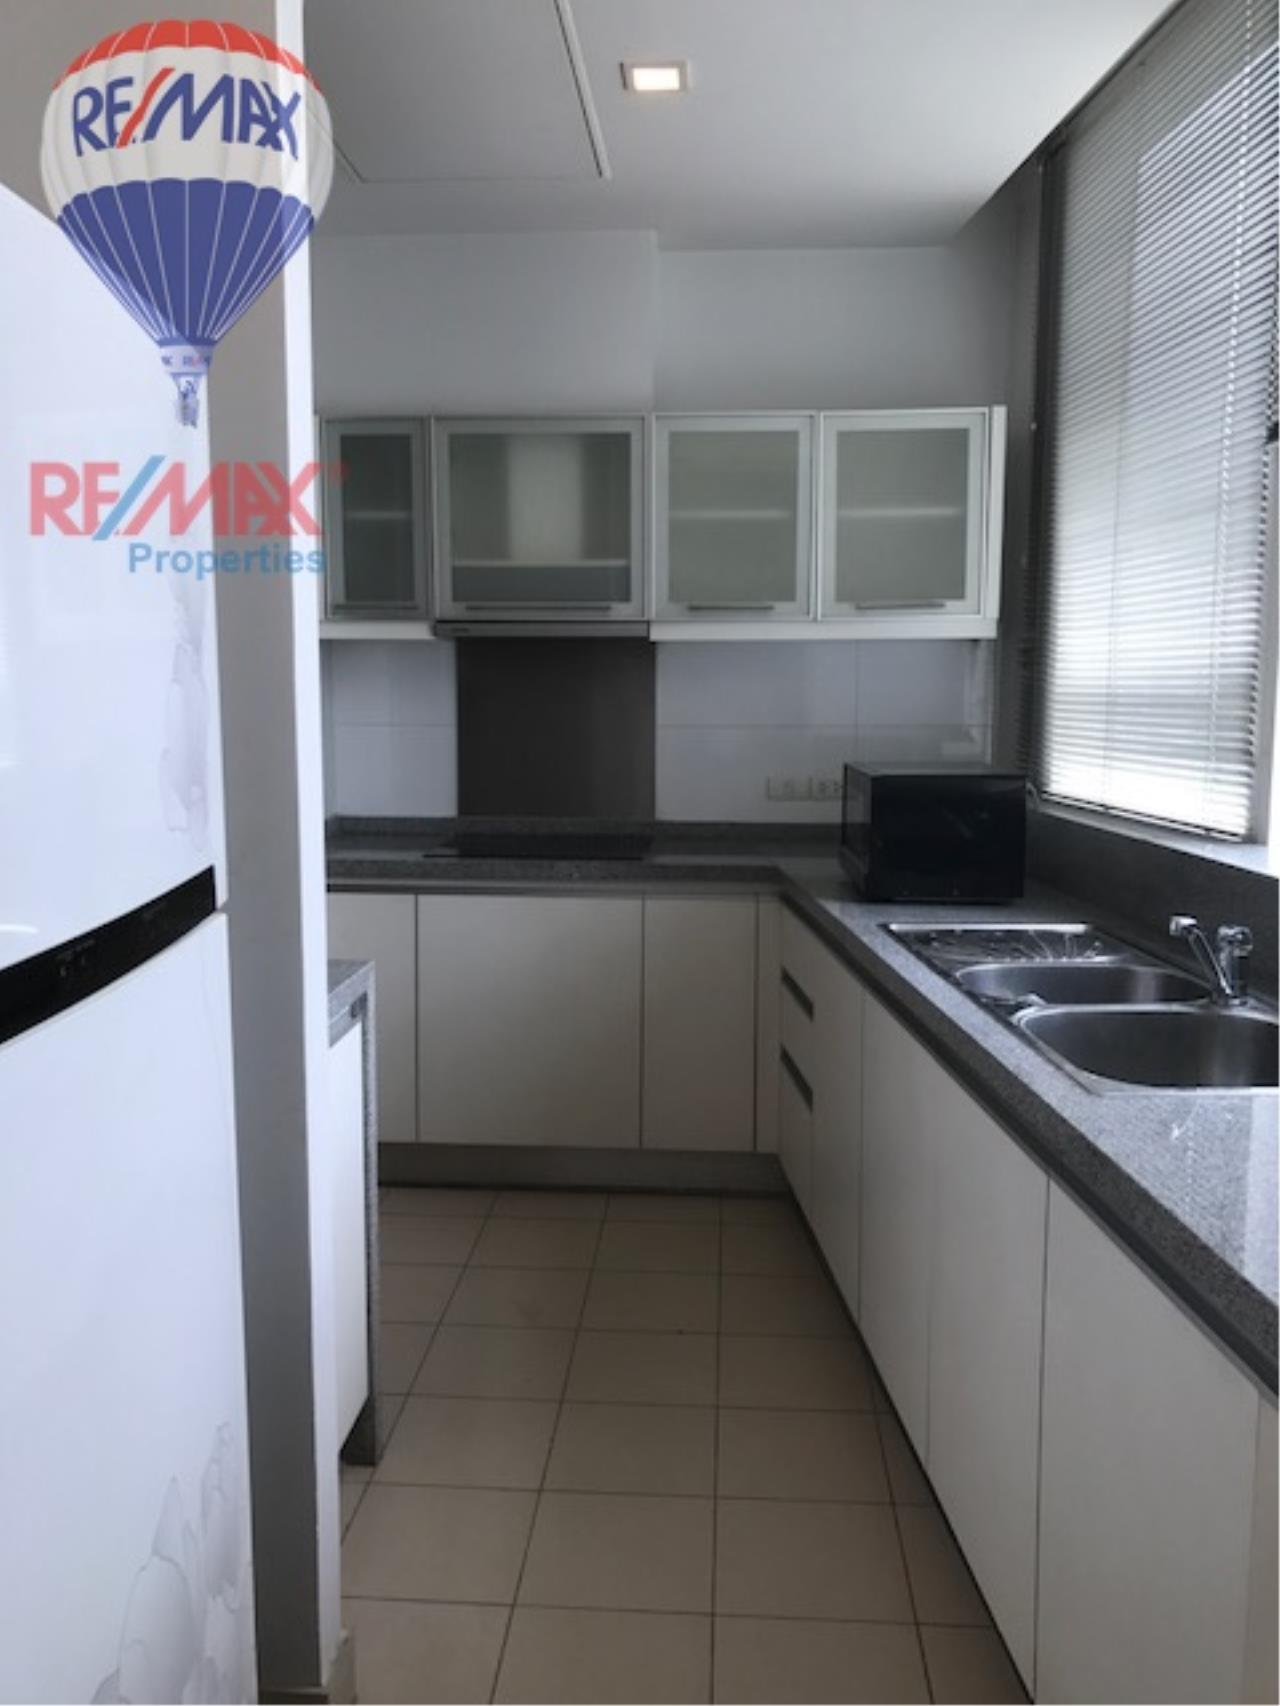 RE/MAX Properties Agency's SALE 2+1 Bedroom  128 Sq.m at Millennium Residence 3